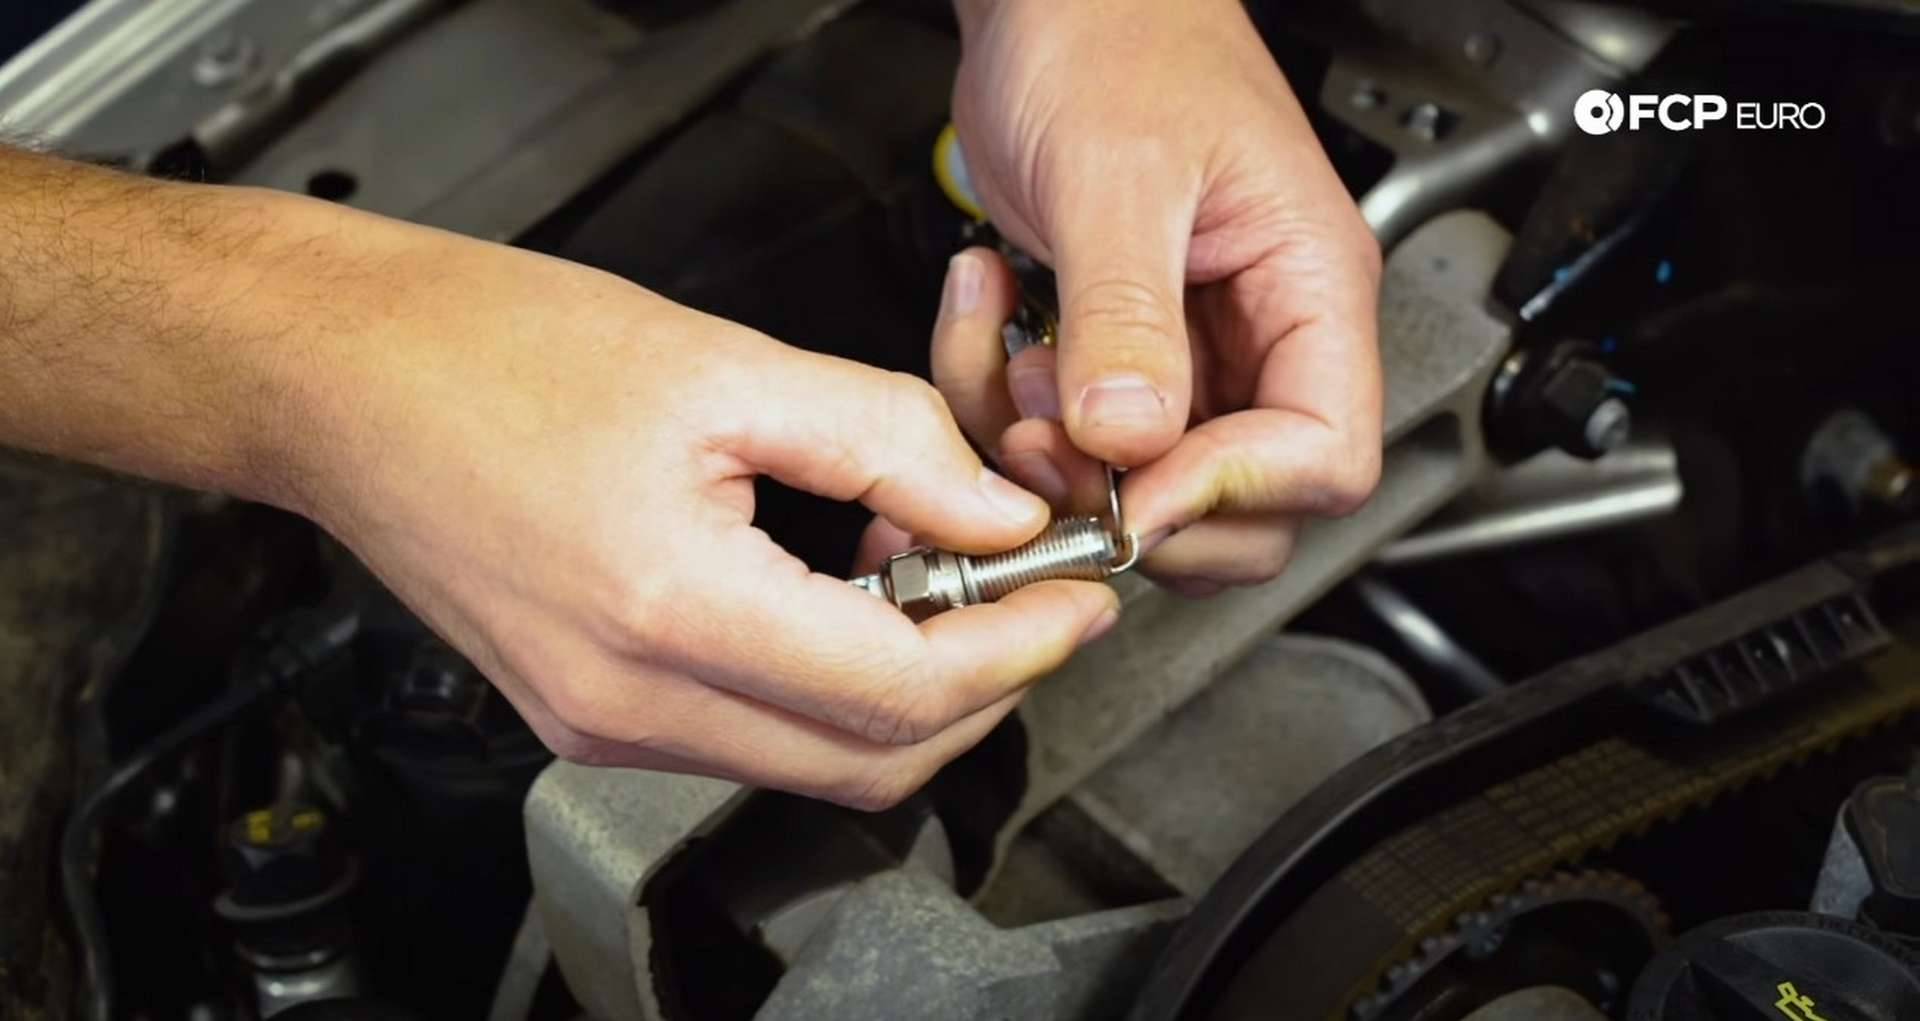 DIY Volvo Spark Plug and Ignition Coil Replacement tightening the spark plug gap